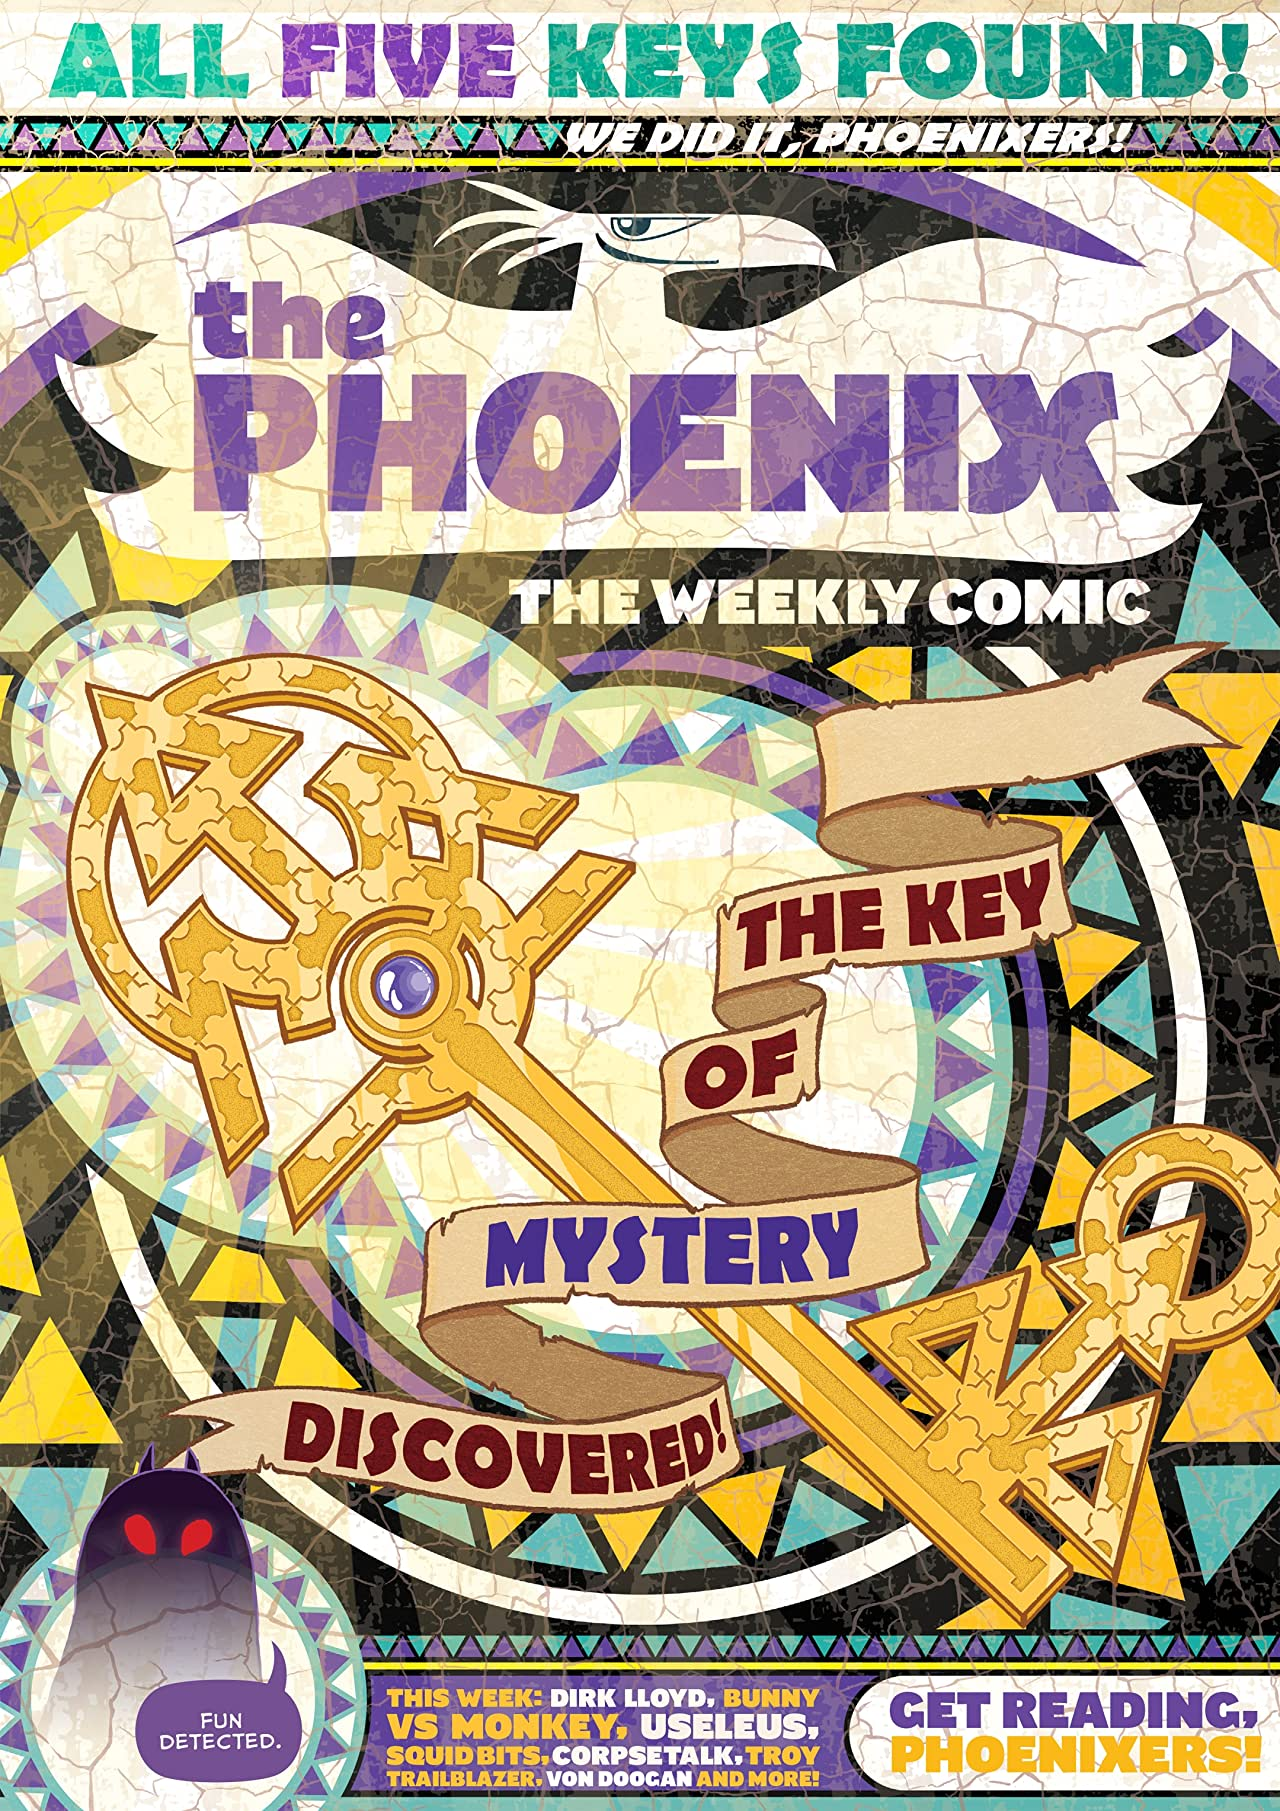 The Phoenix #198: The Weekly Story Comic